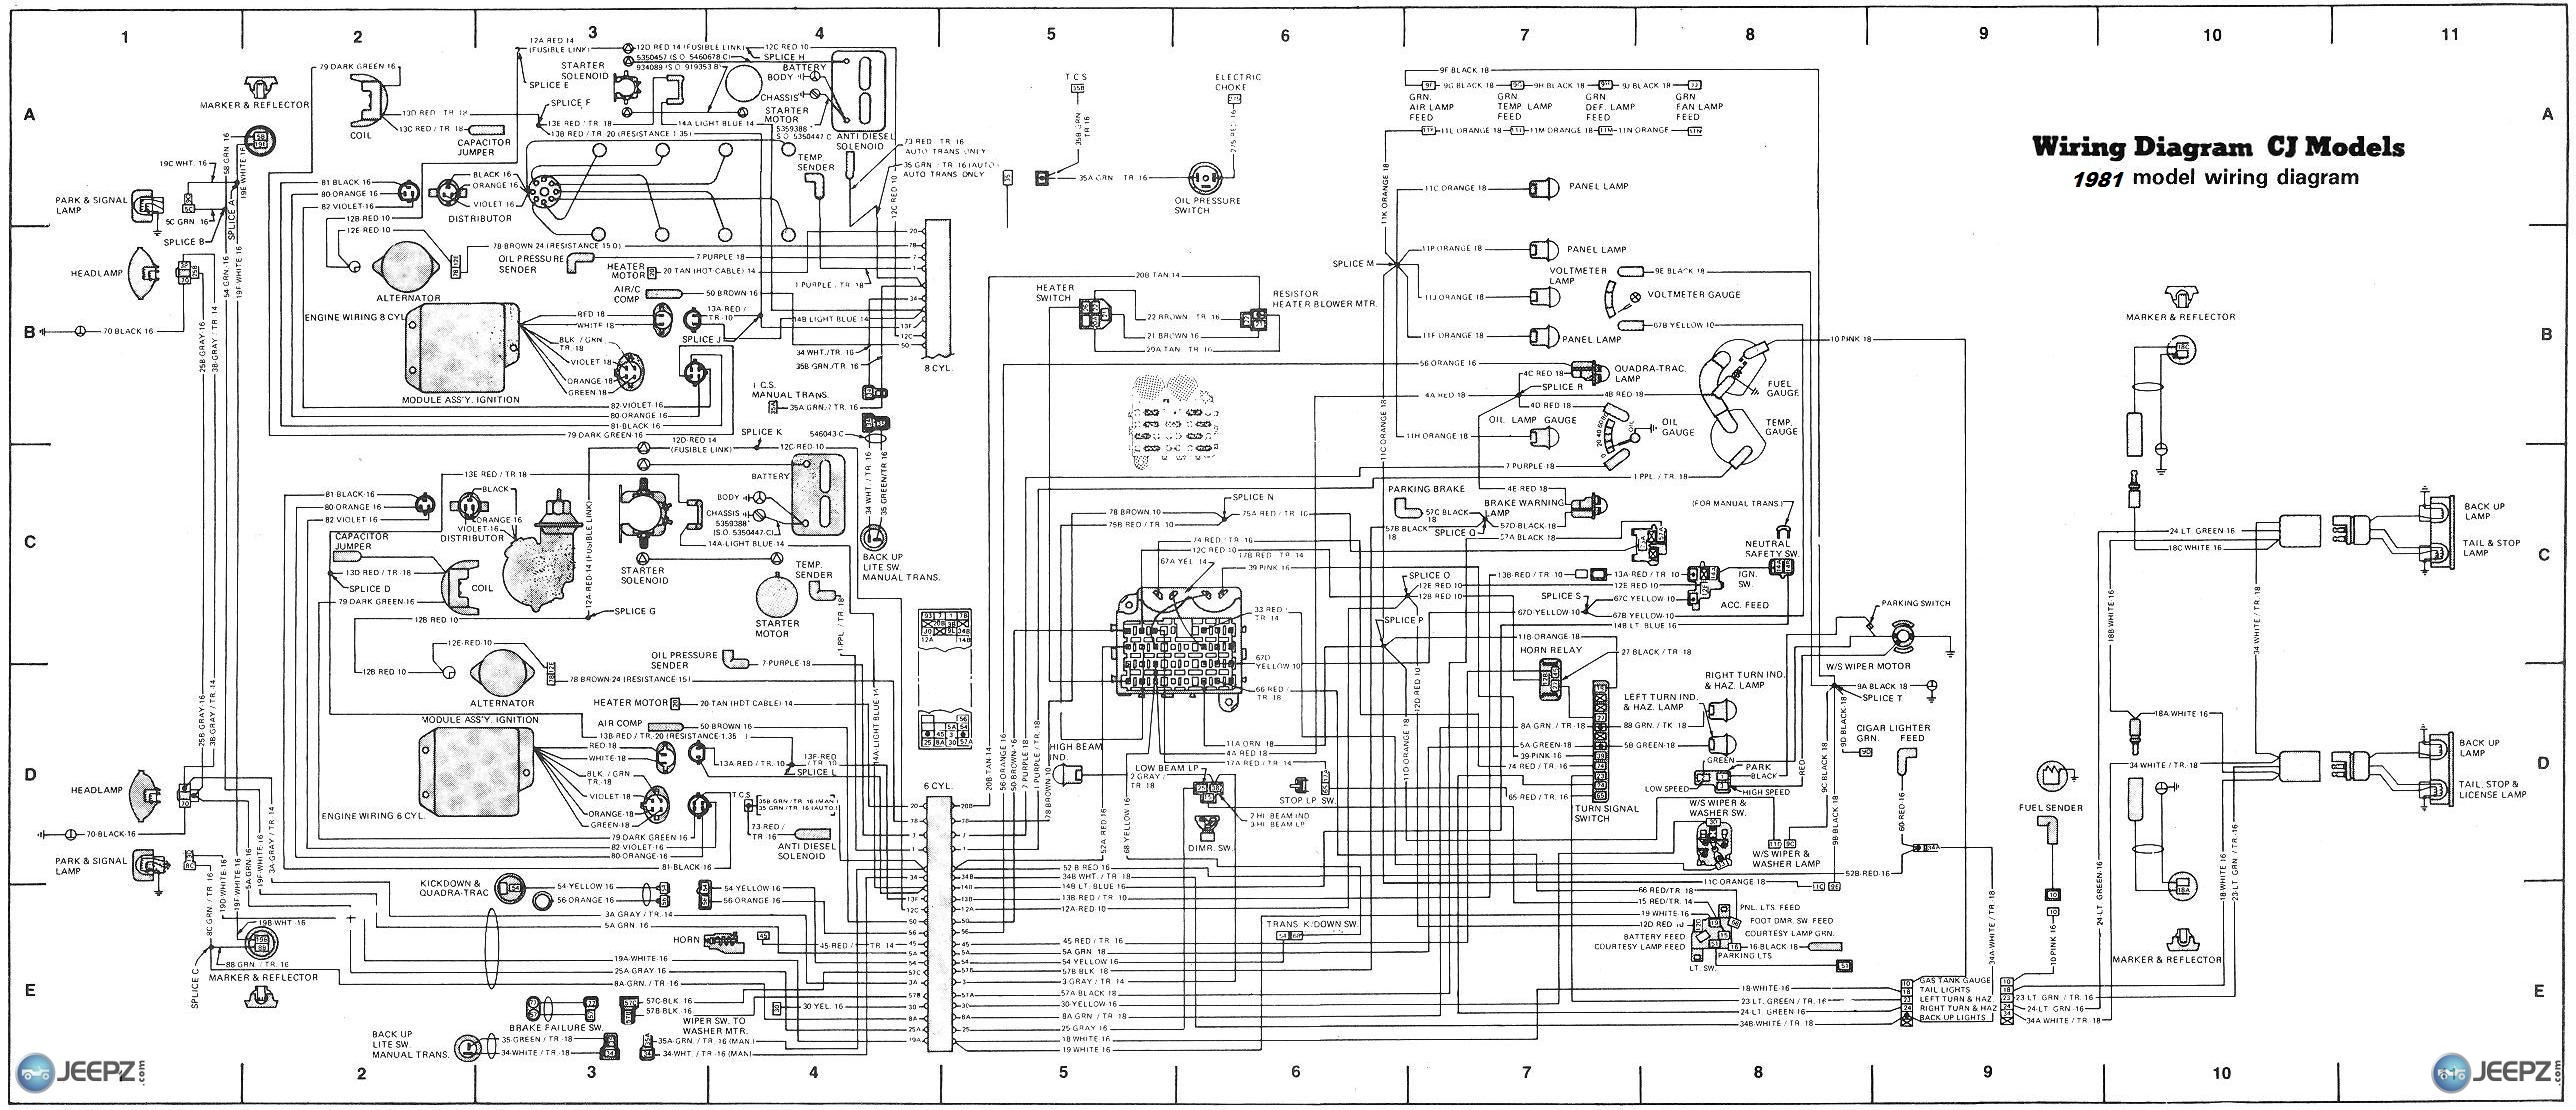 ... Corsa B Wiring Fuse 8A ... 7993d1301845049 cj 7 wire diagram cj wiring  diagram 1981?resized665%2C2876ssld1